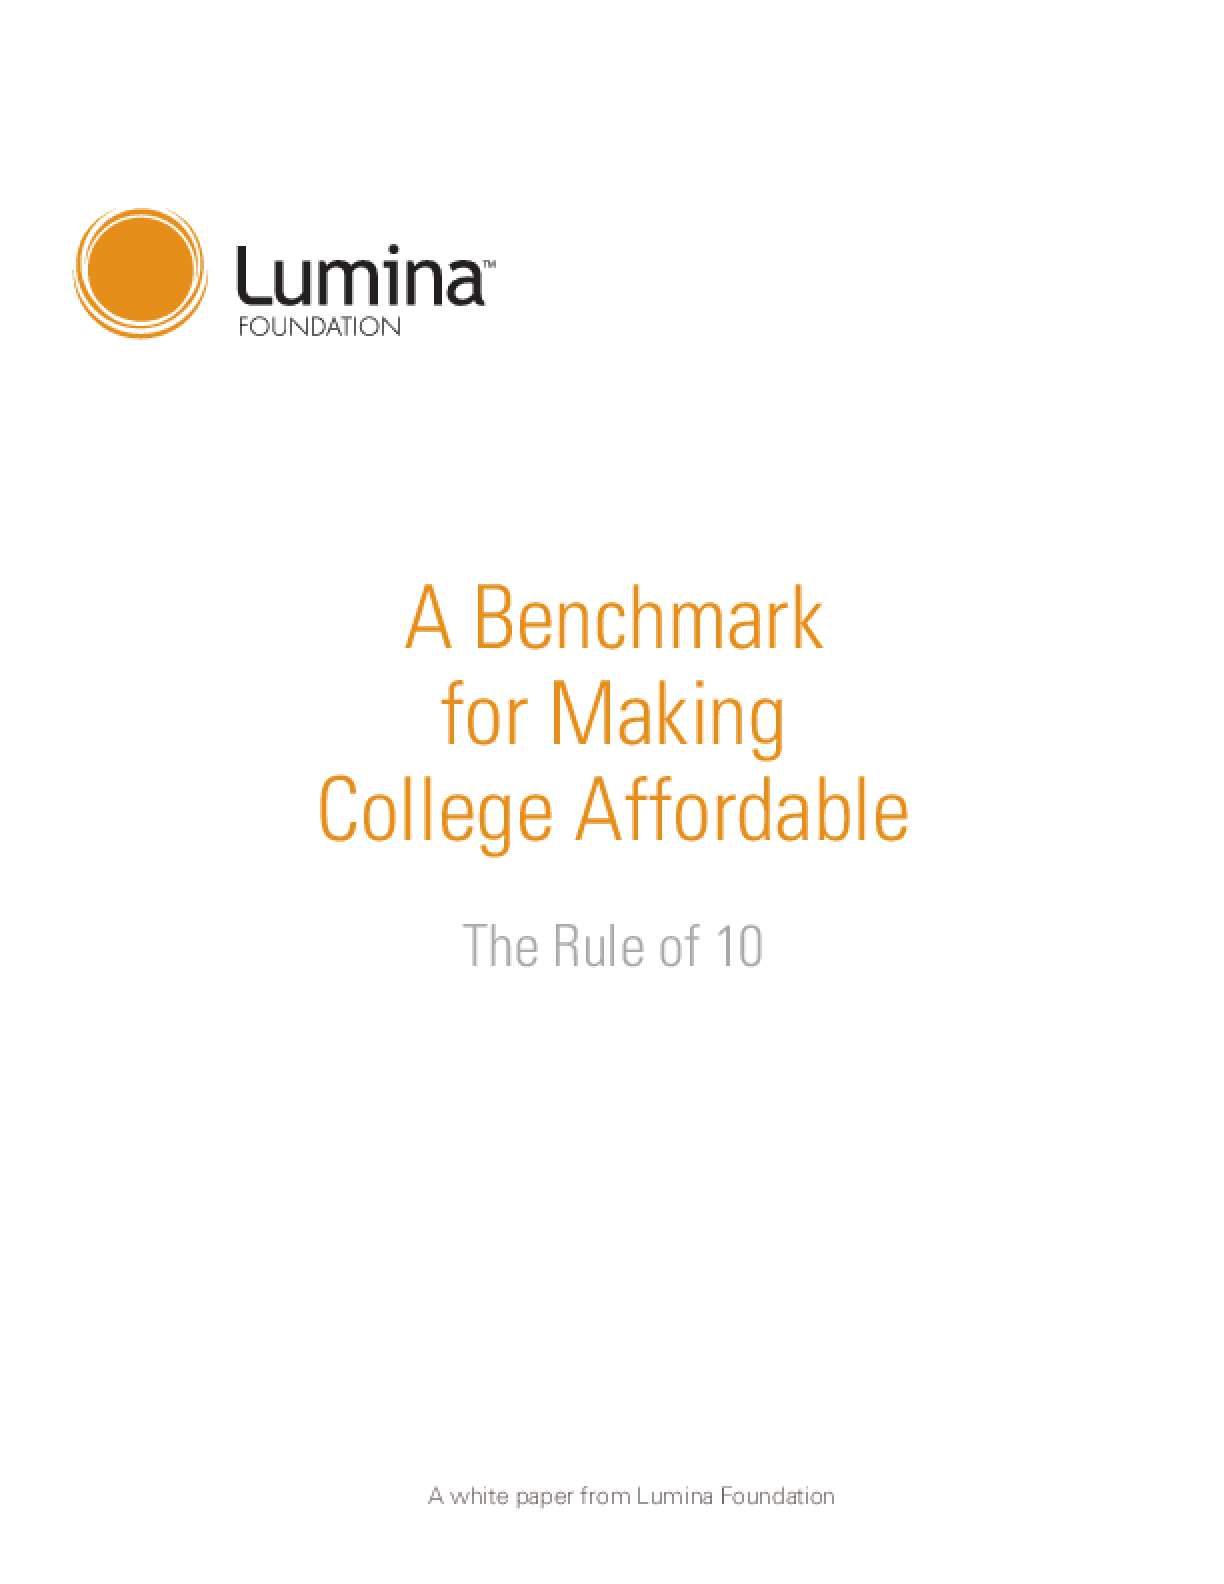 Benchmark for Making College Affordable, A